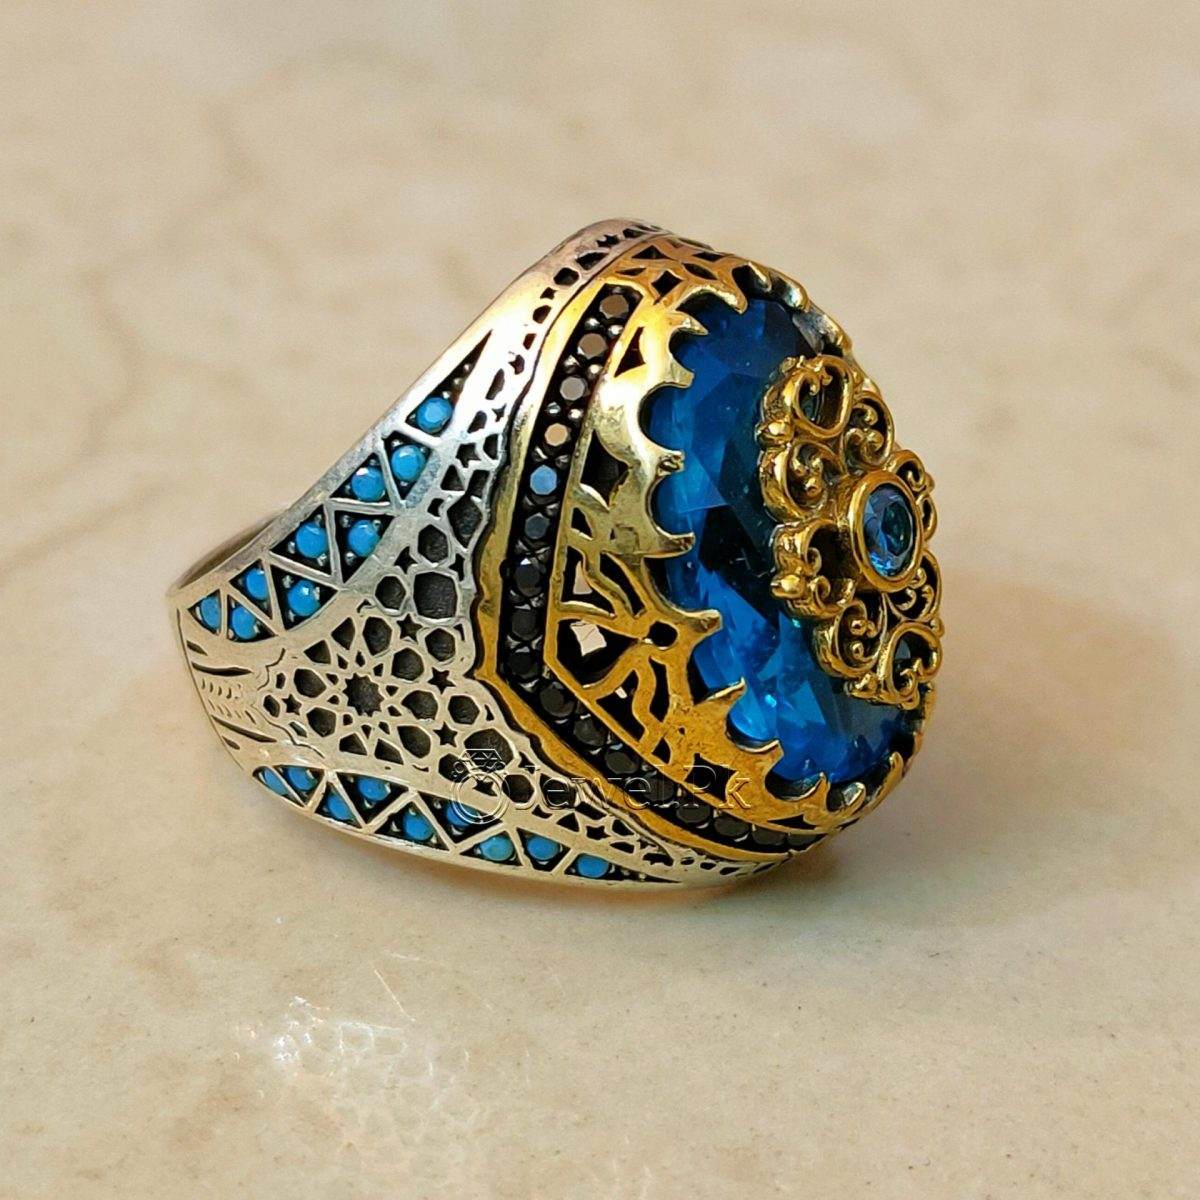 Turkish Rings 925 Silver Handmade Imported Ottoman Rings Pakistan 4 natural gemstones pakistan + 925 silver jewelry online